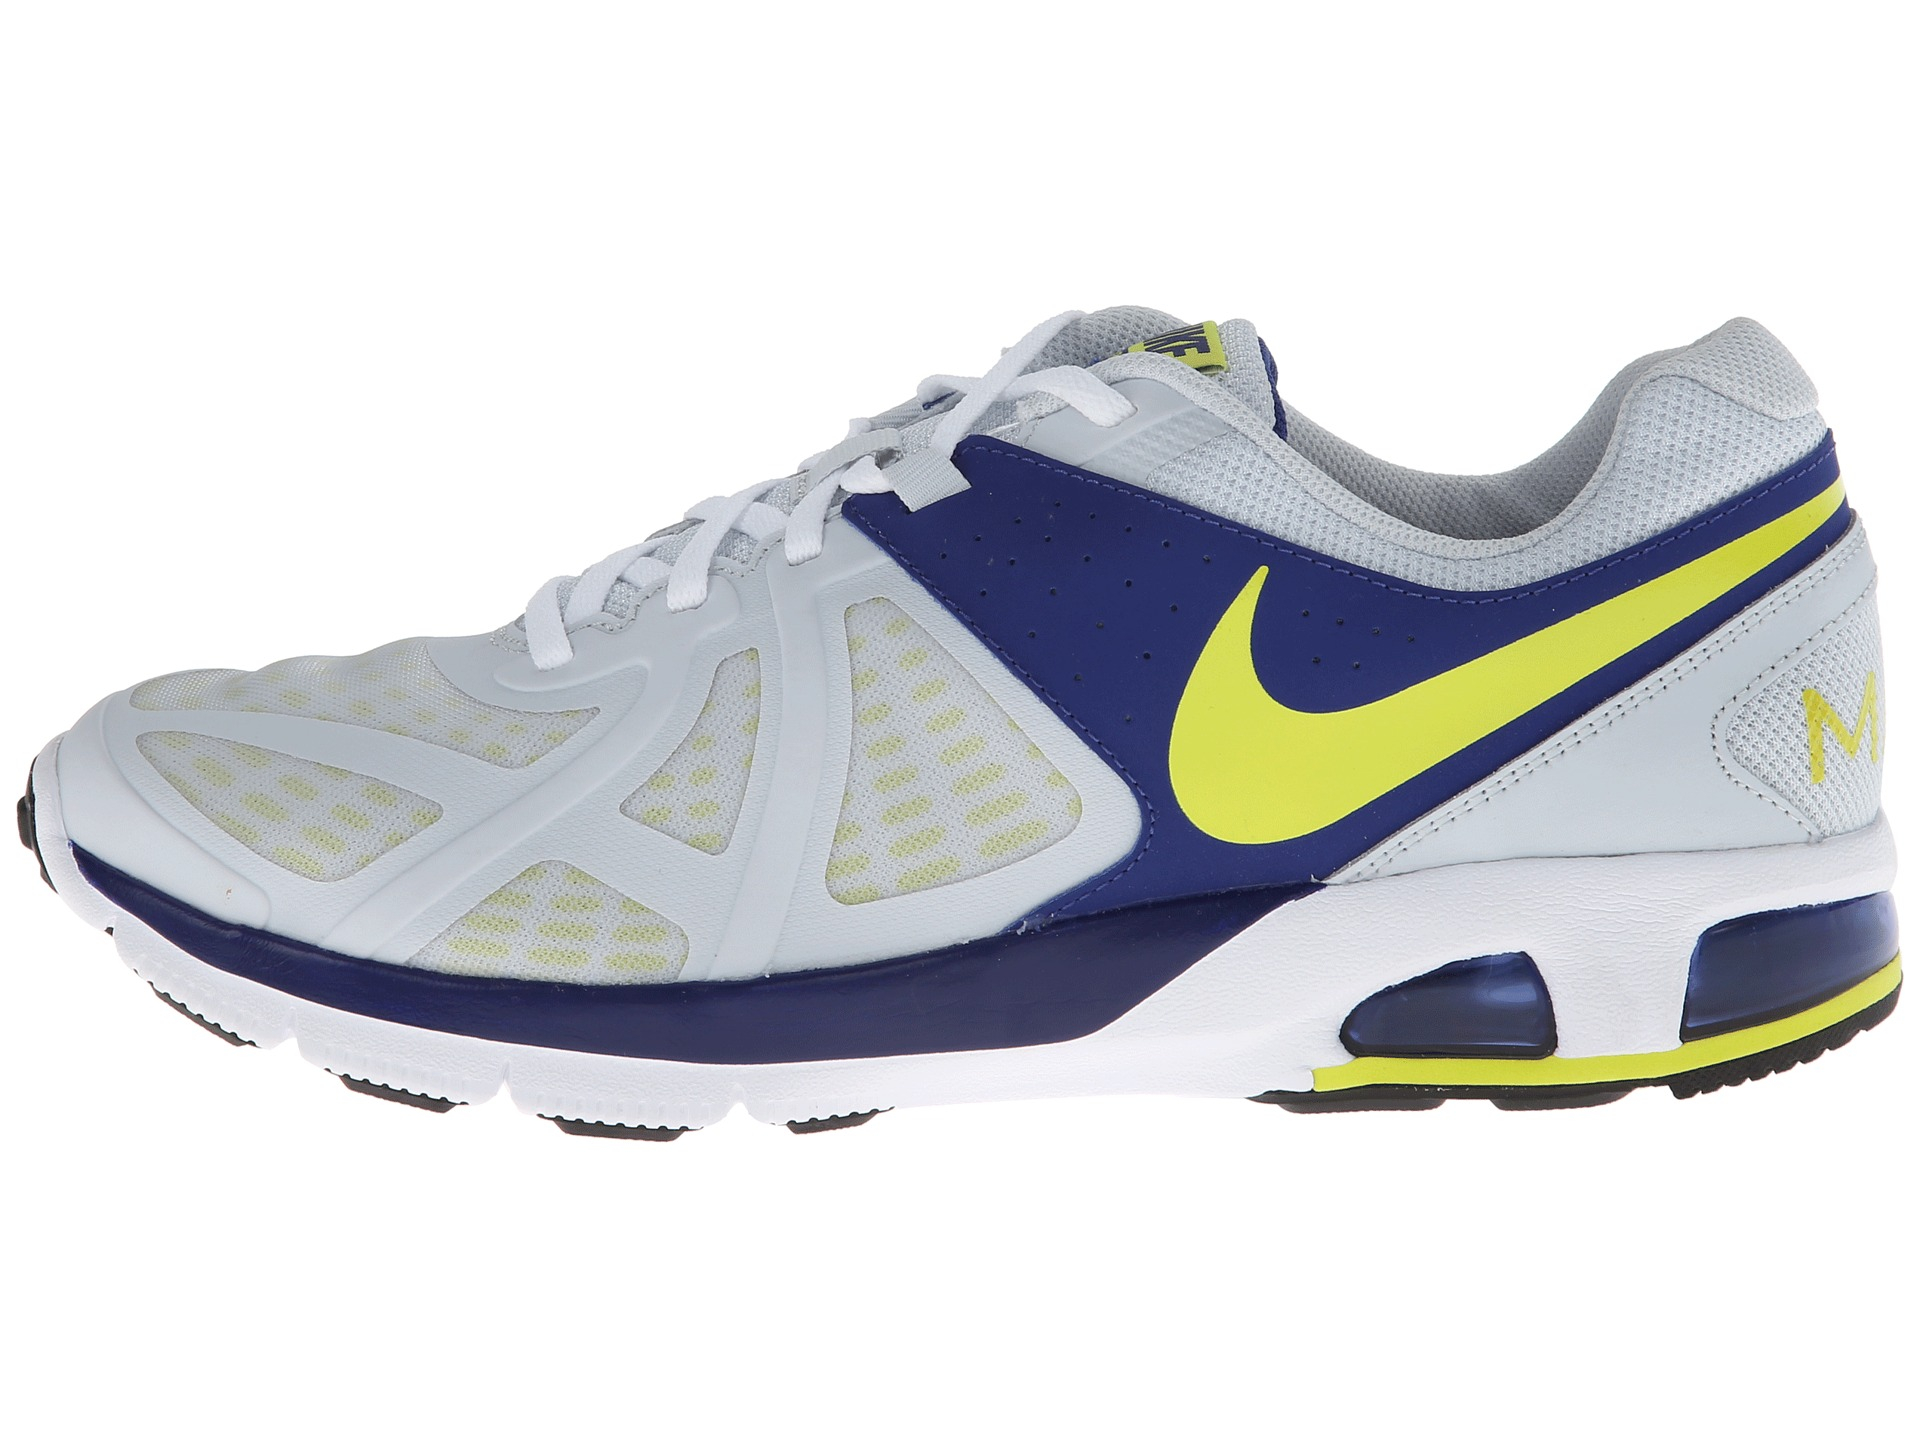 lyst nike air max run lite 5 in blue for men. Black Bedroom Furniture Sets. Home Design Ideas